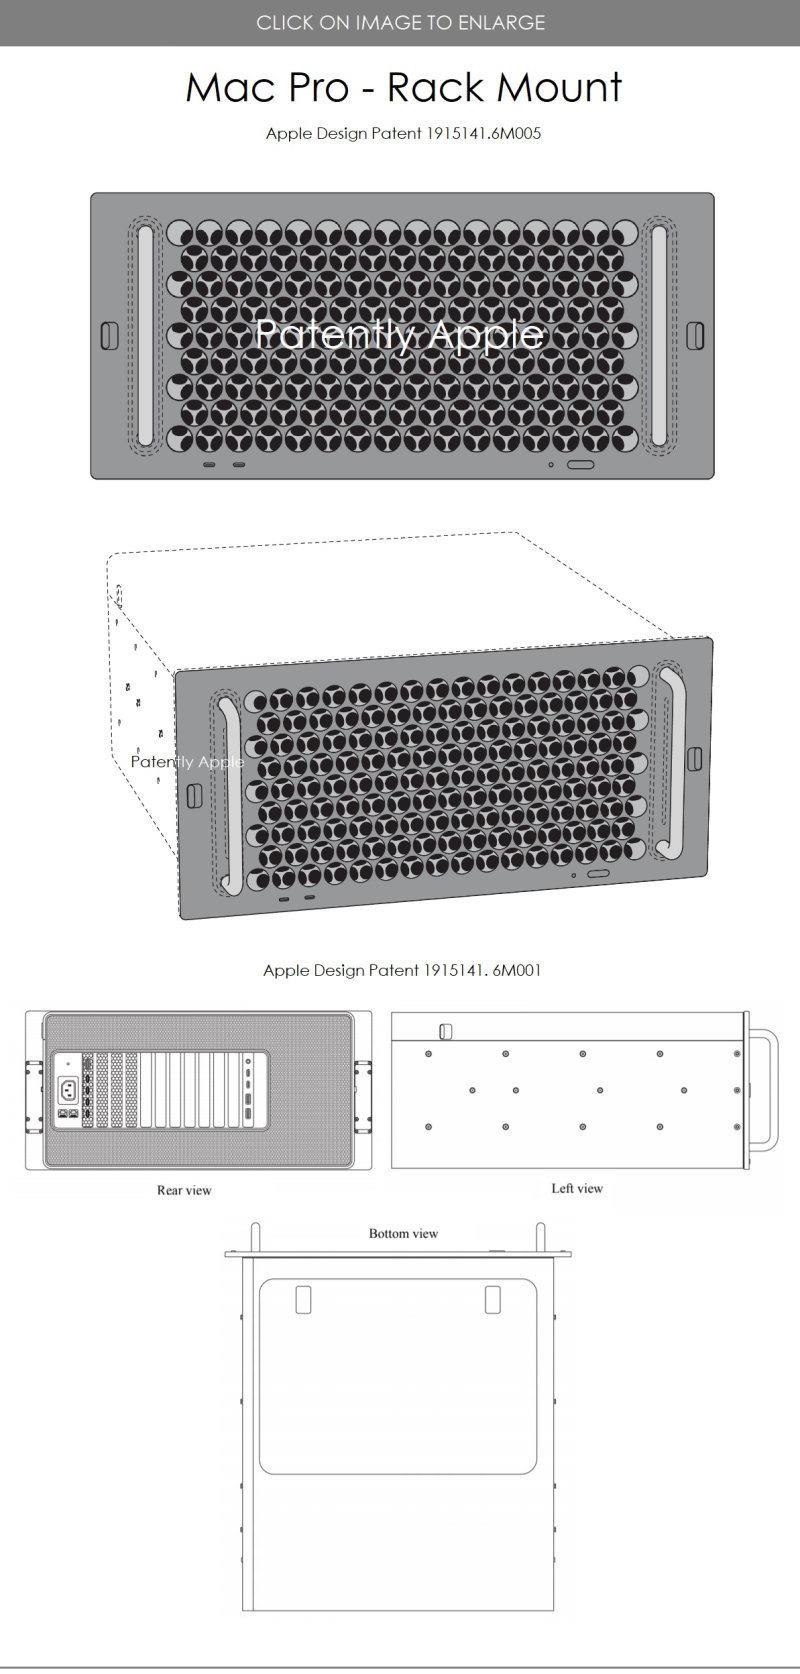 2 Apple design patents for Mac Pro - Rack Mount